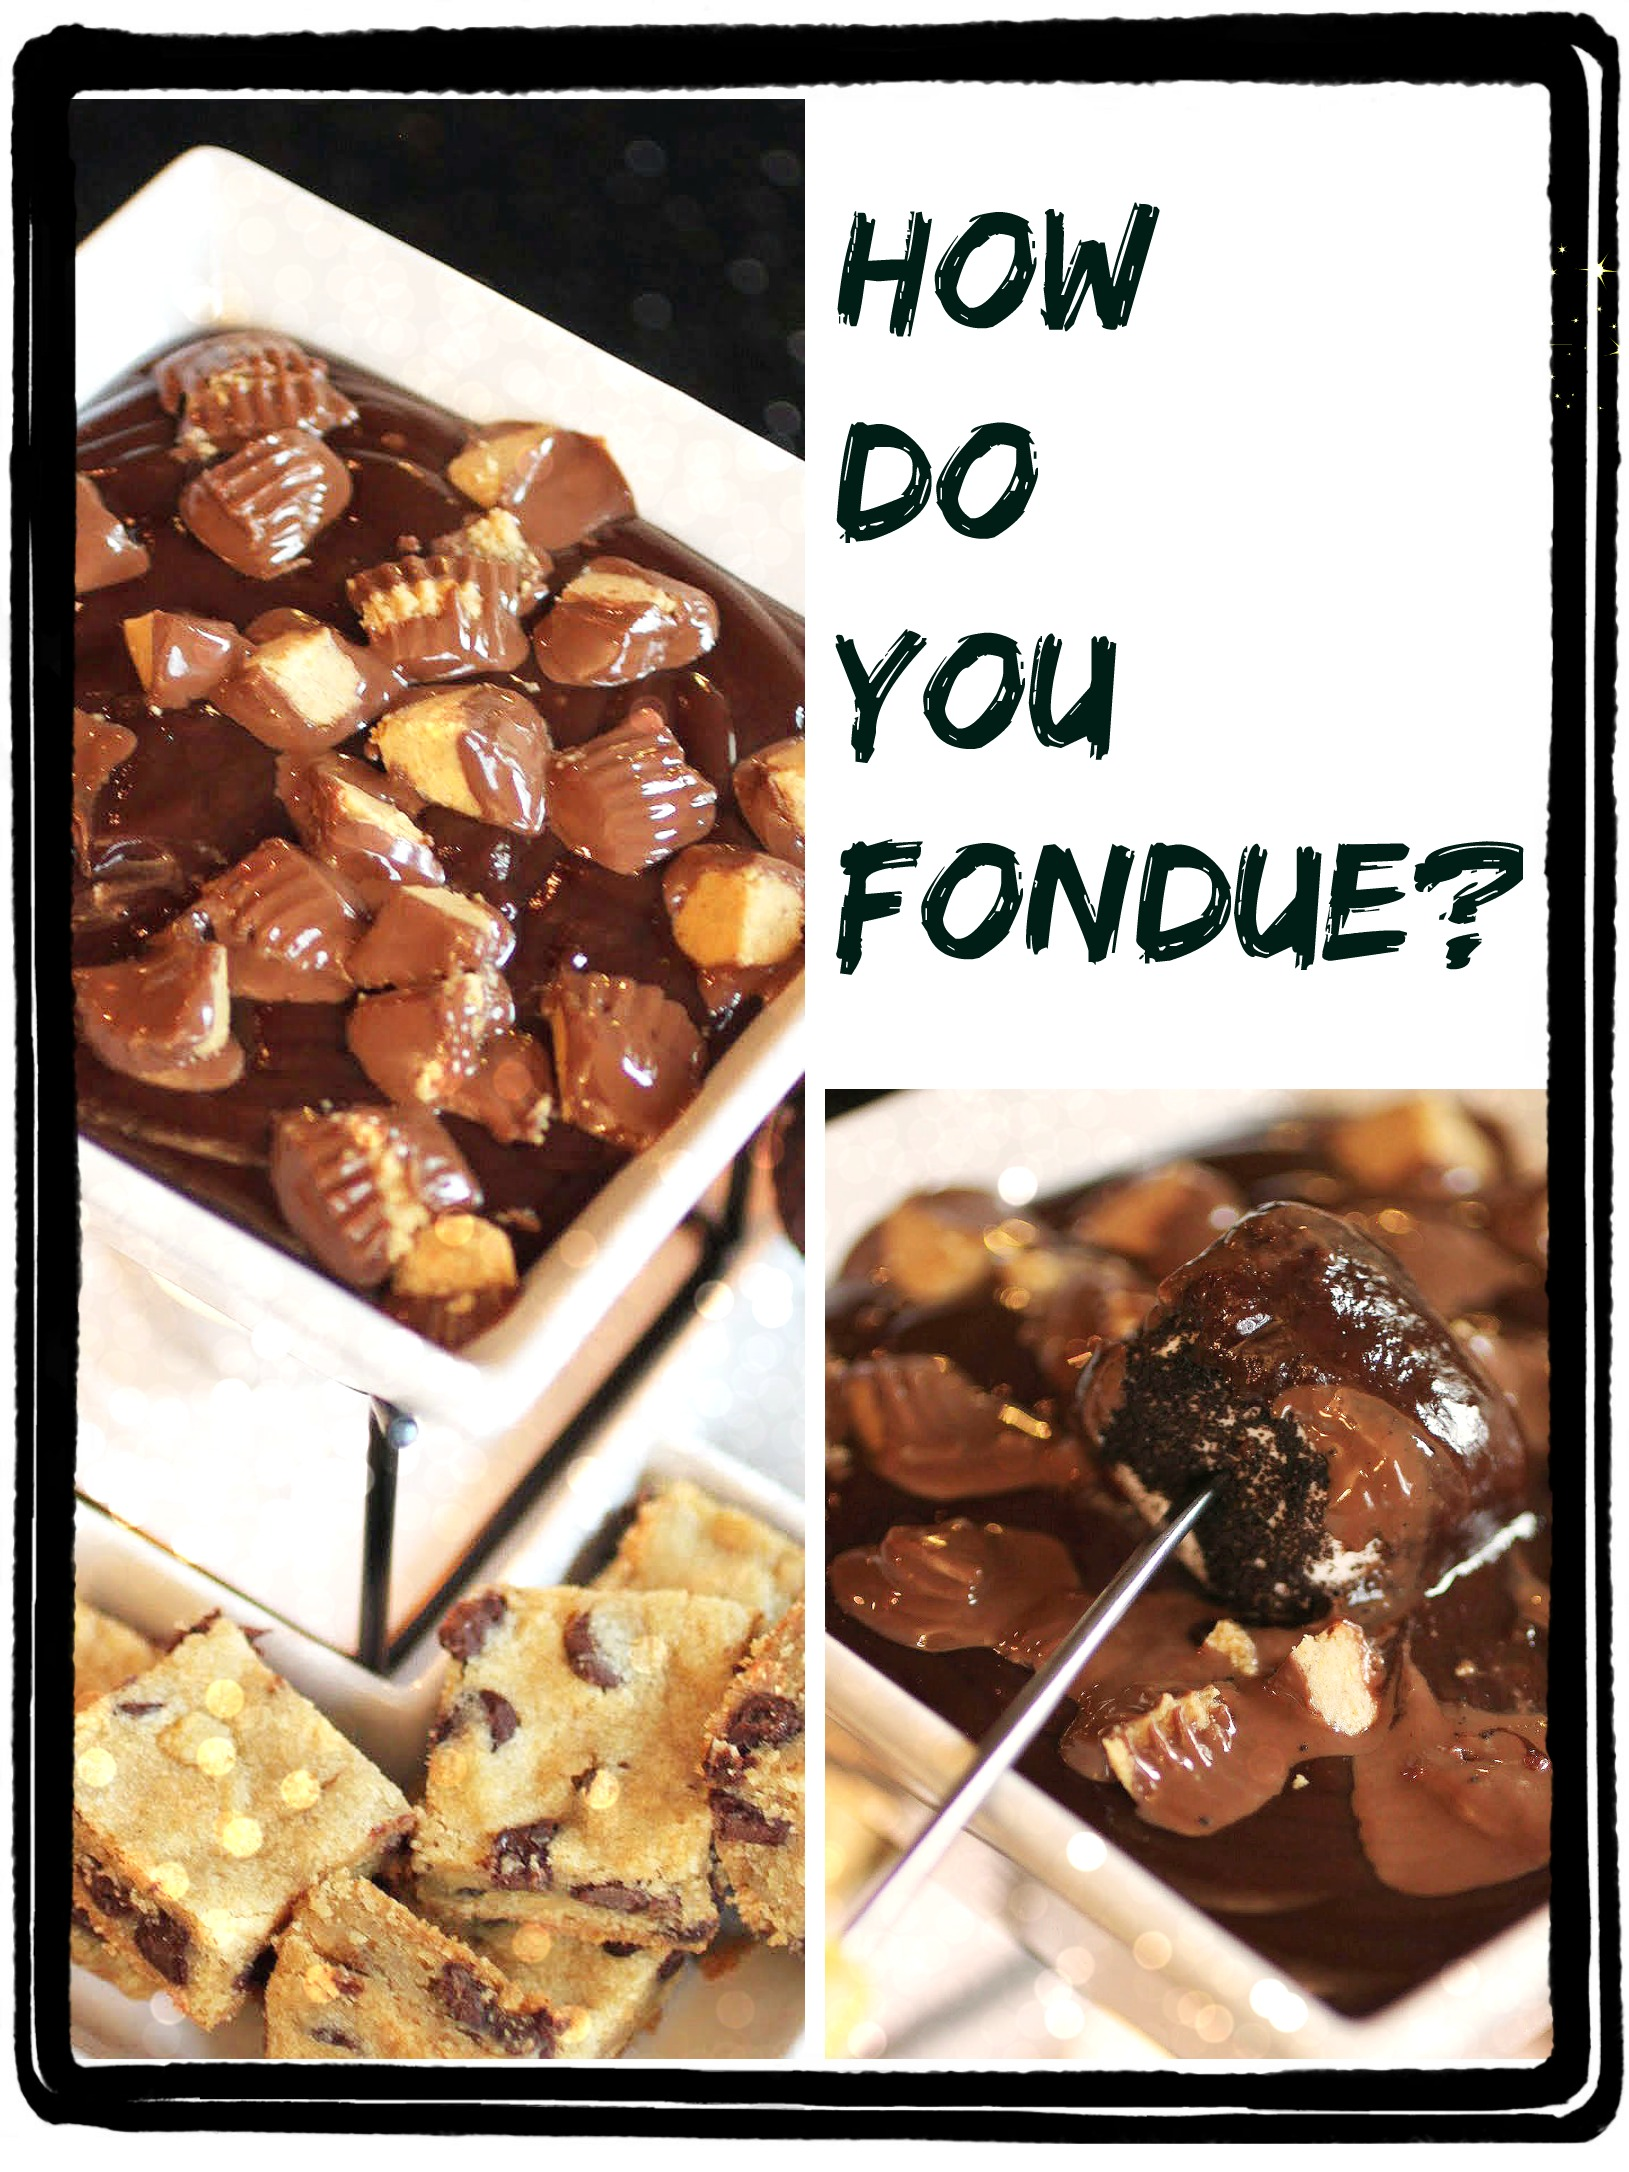 How Do You Fondue?